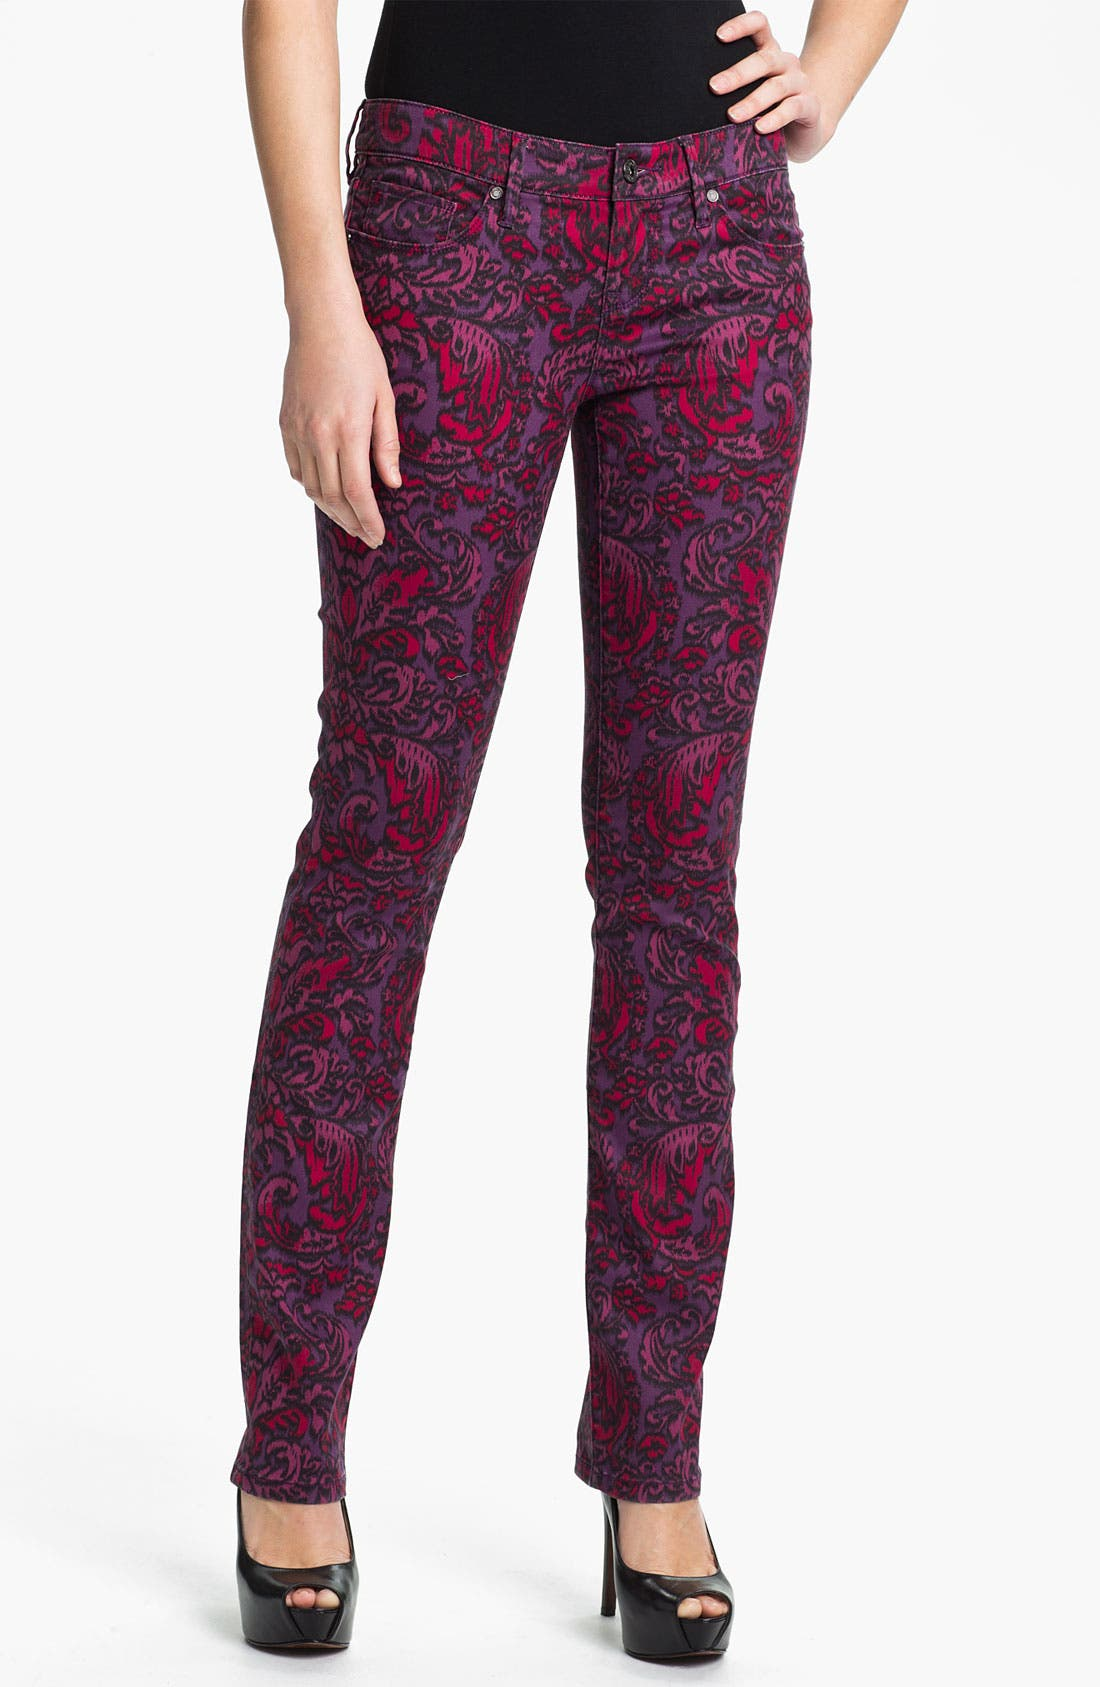 Main Image - Isaac Mizrahi Jeans 'Emma' Straight Leg Print Jeans (Online Exclusive)